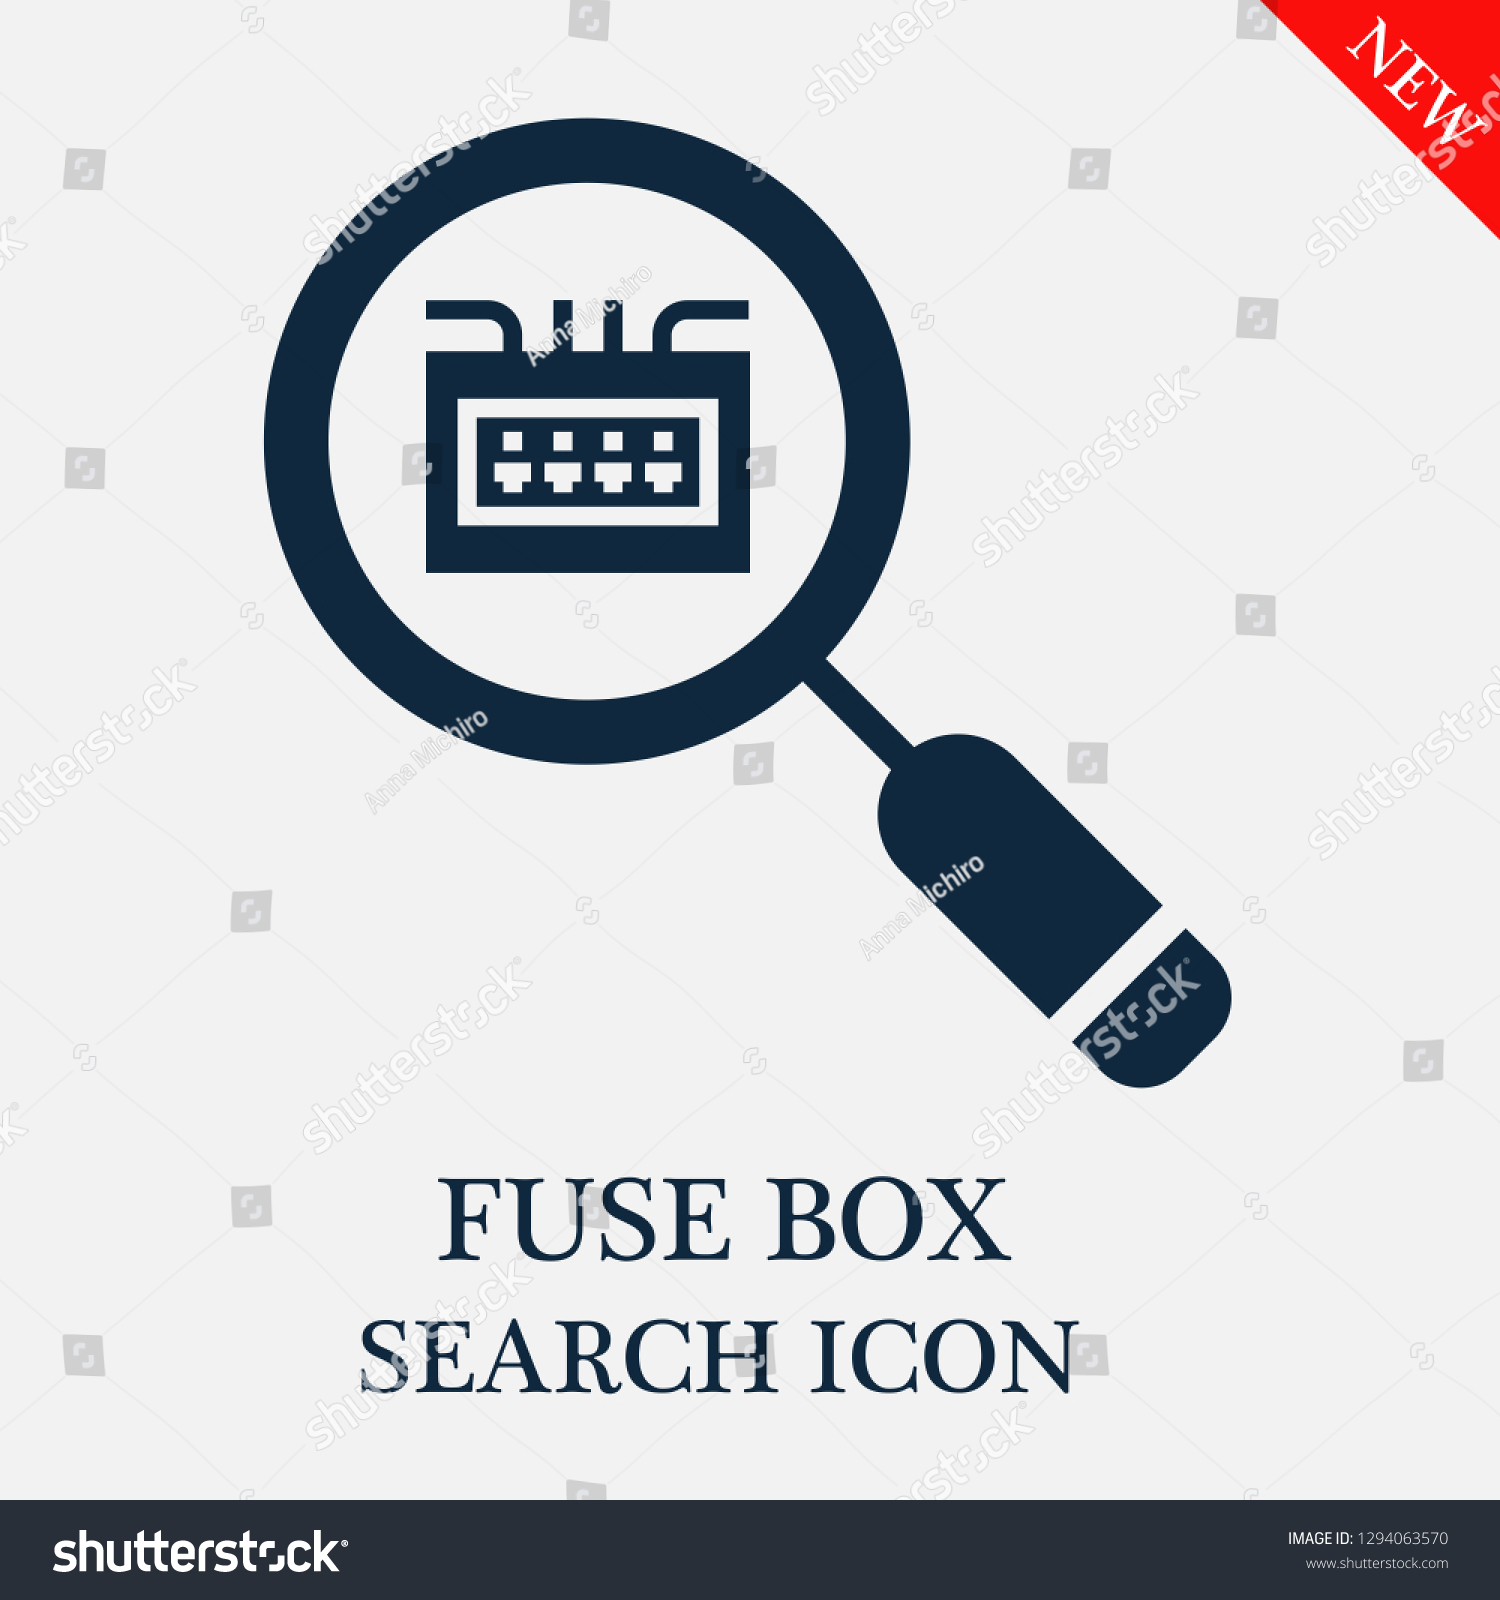 hight resolution of fuse box search icon editable fuse box search icon for web or mobile